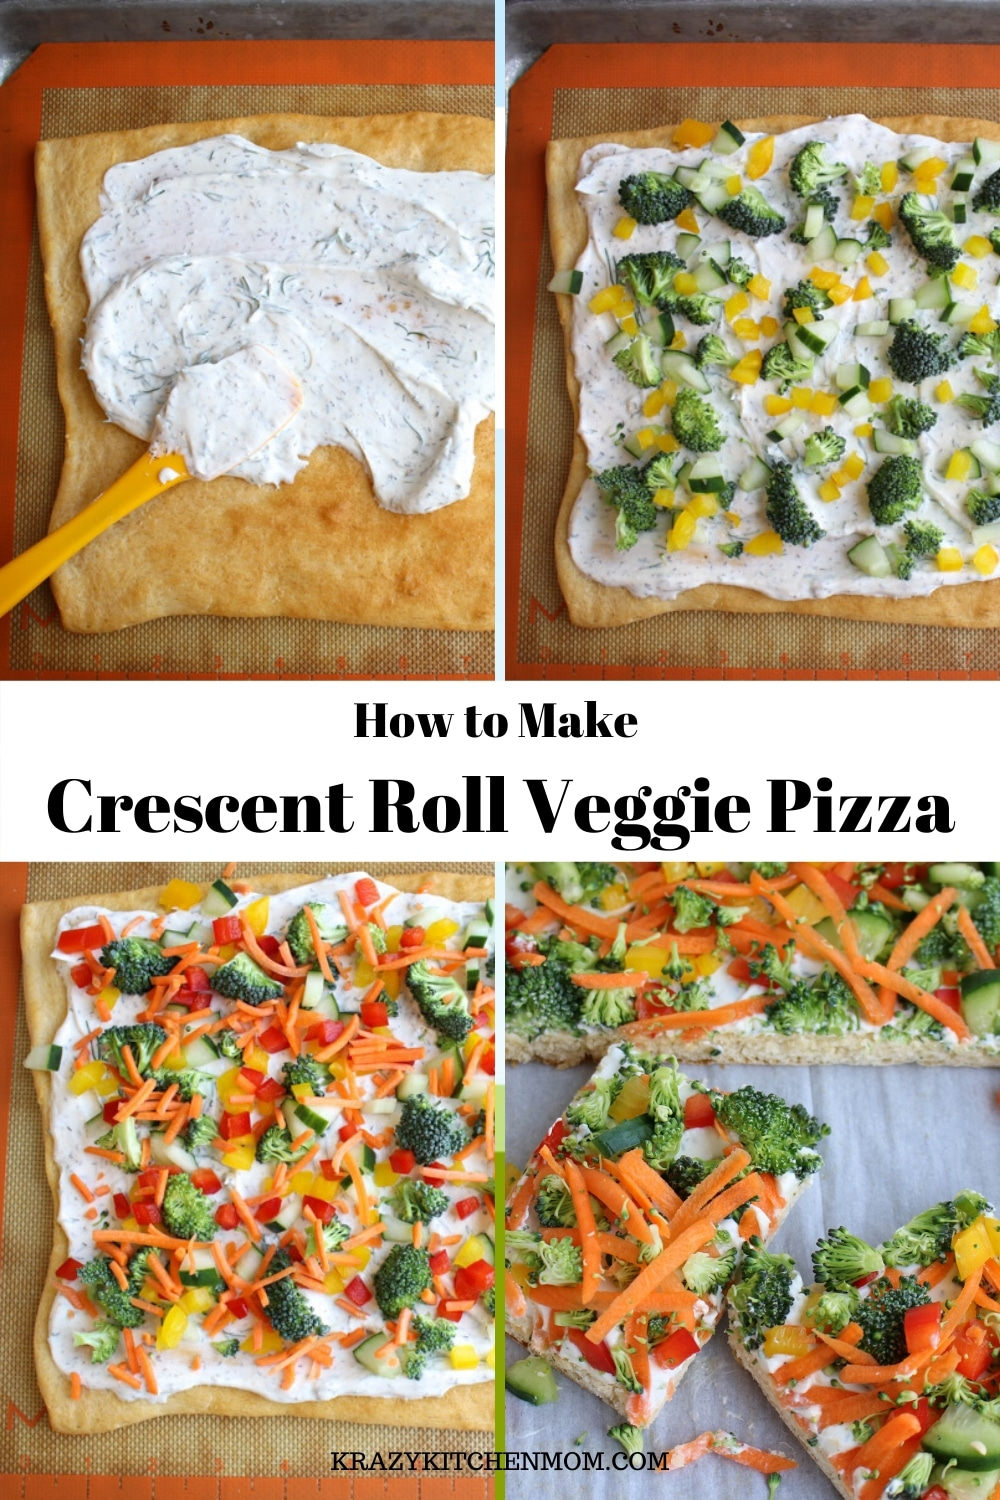 Crescent Roll Veggie Pizzaa fresh way to eat veggies. It's made withrefrigerator crescent roll dough, homemade dill dip and lots of fresh vegetables. I'd say it's a classic! via @krazykitchenmom